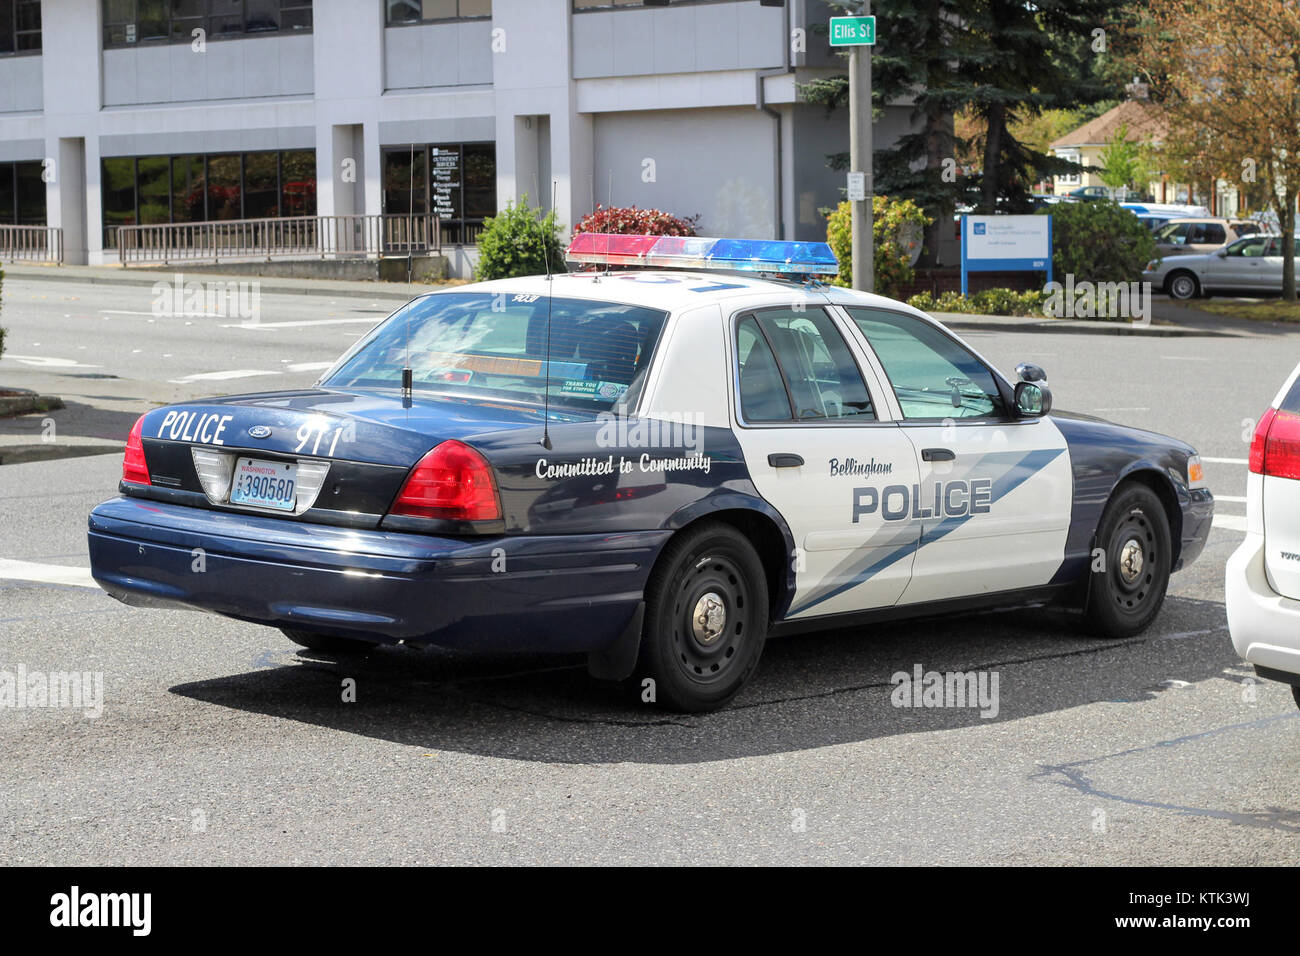 Illustration Ford Crown Victoria High Resolution Stock Photography And Images Alamy Crown vic takes us on one memorable night in the life of veteran patrol officer ray mandel and his trainee, ambitious rookie cop nick holland in lapd's olympic division. alamy